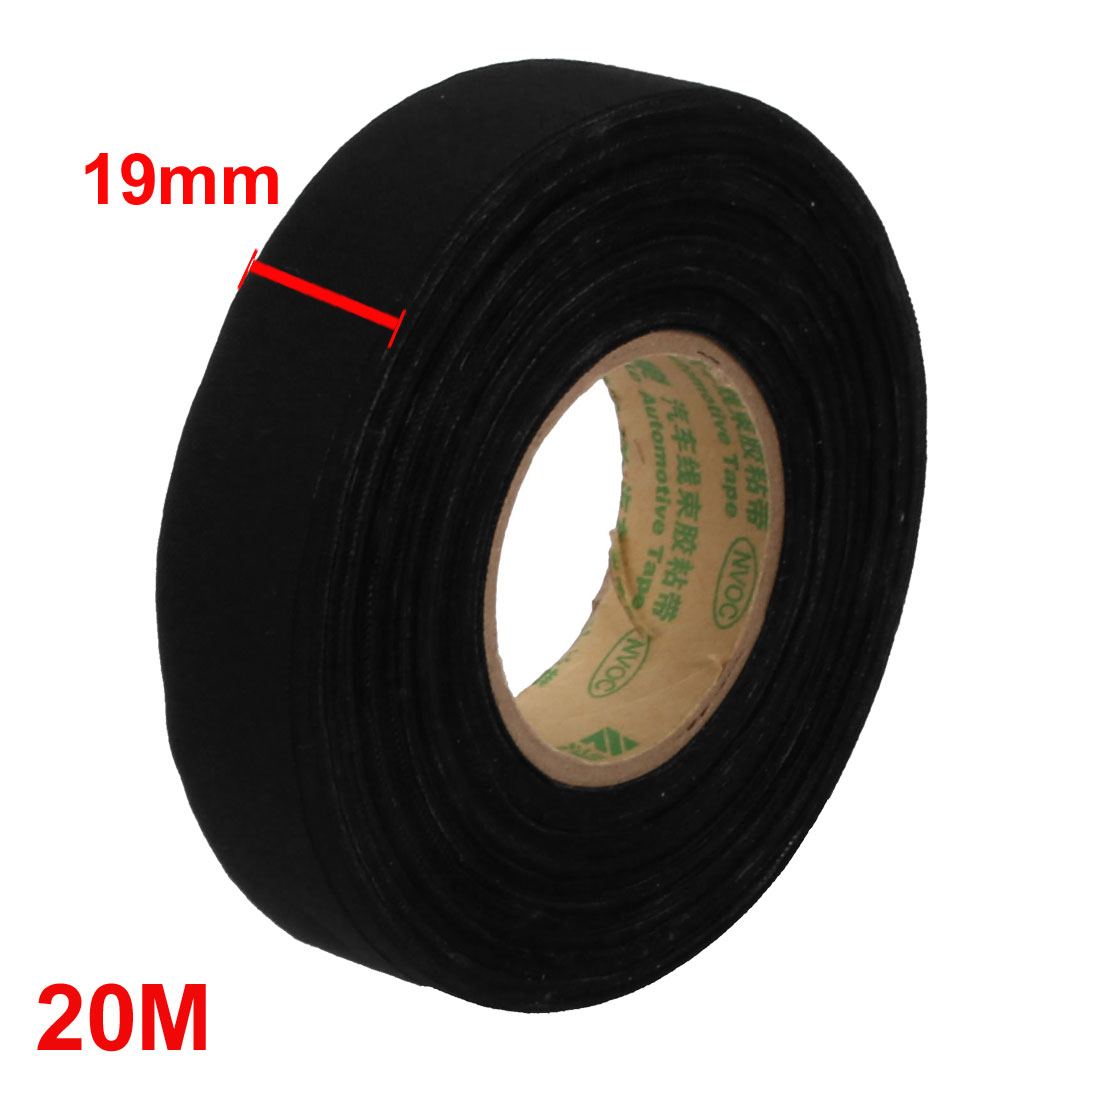 Unique Bargains Black 20m Long 19mm Width Insulation Adhesive Cloth Tape  Car Wire Harness Tape